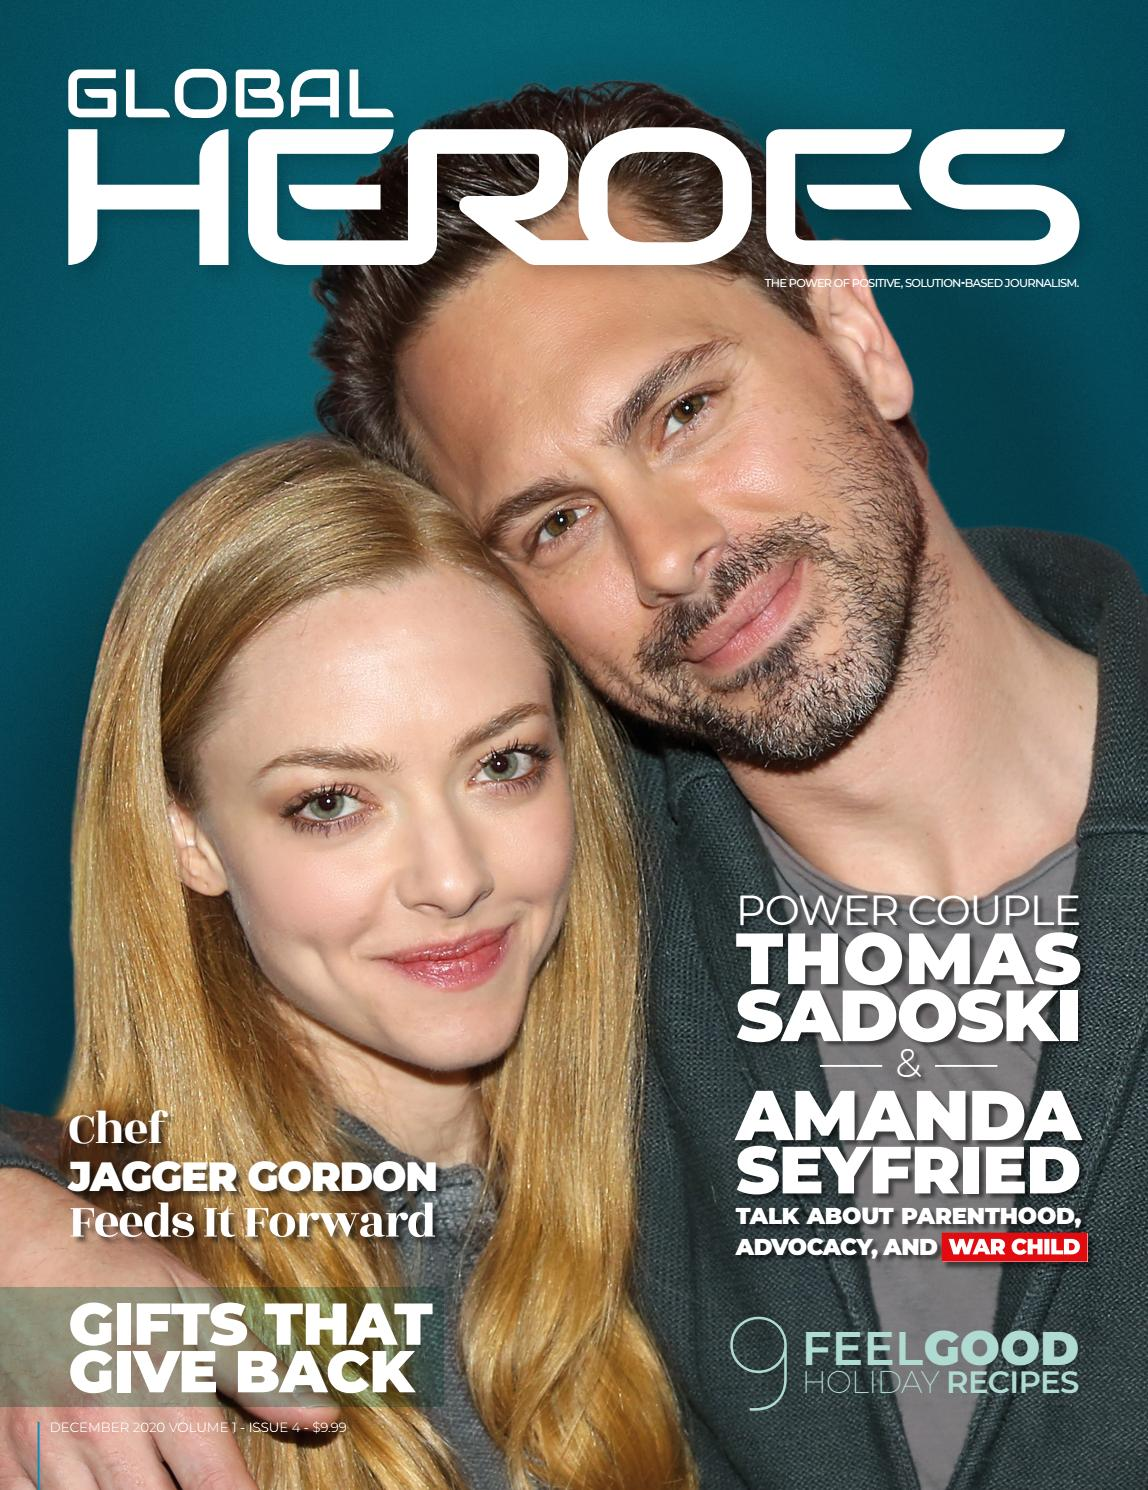 Enjoy Global Heroes Magazine for Free...yeah, because you are a Hero!